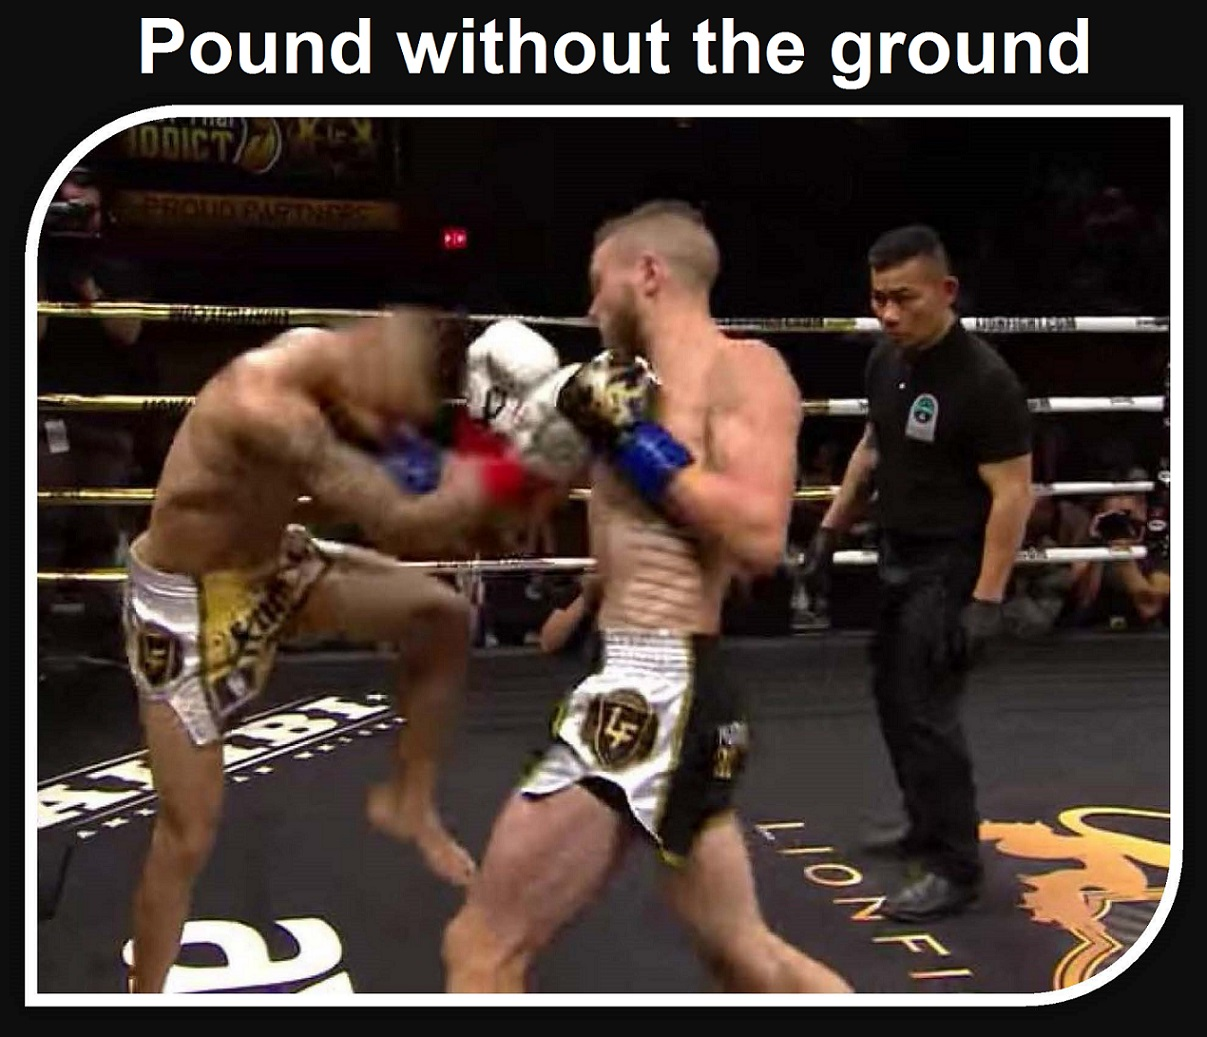 Pound without the ground